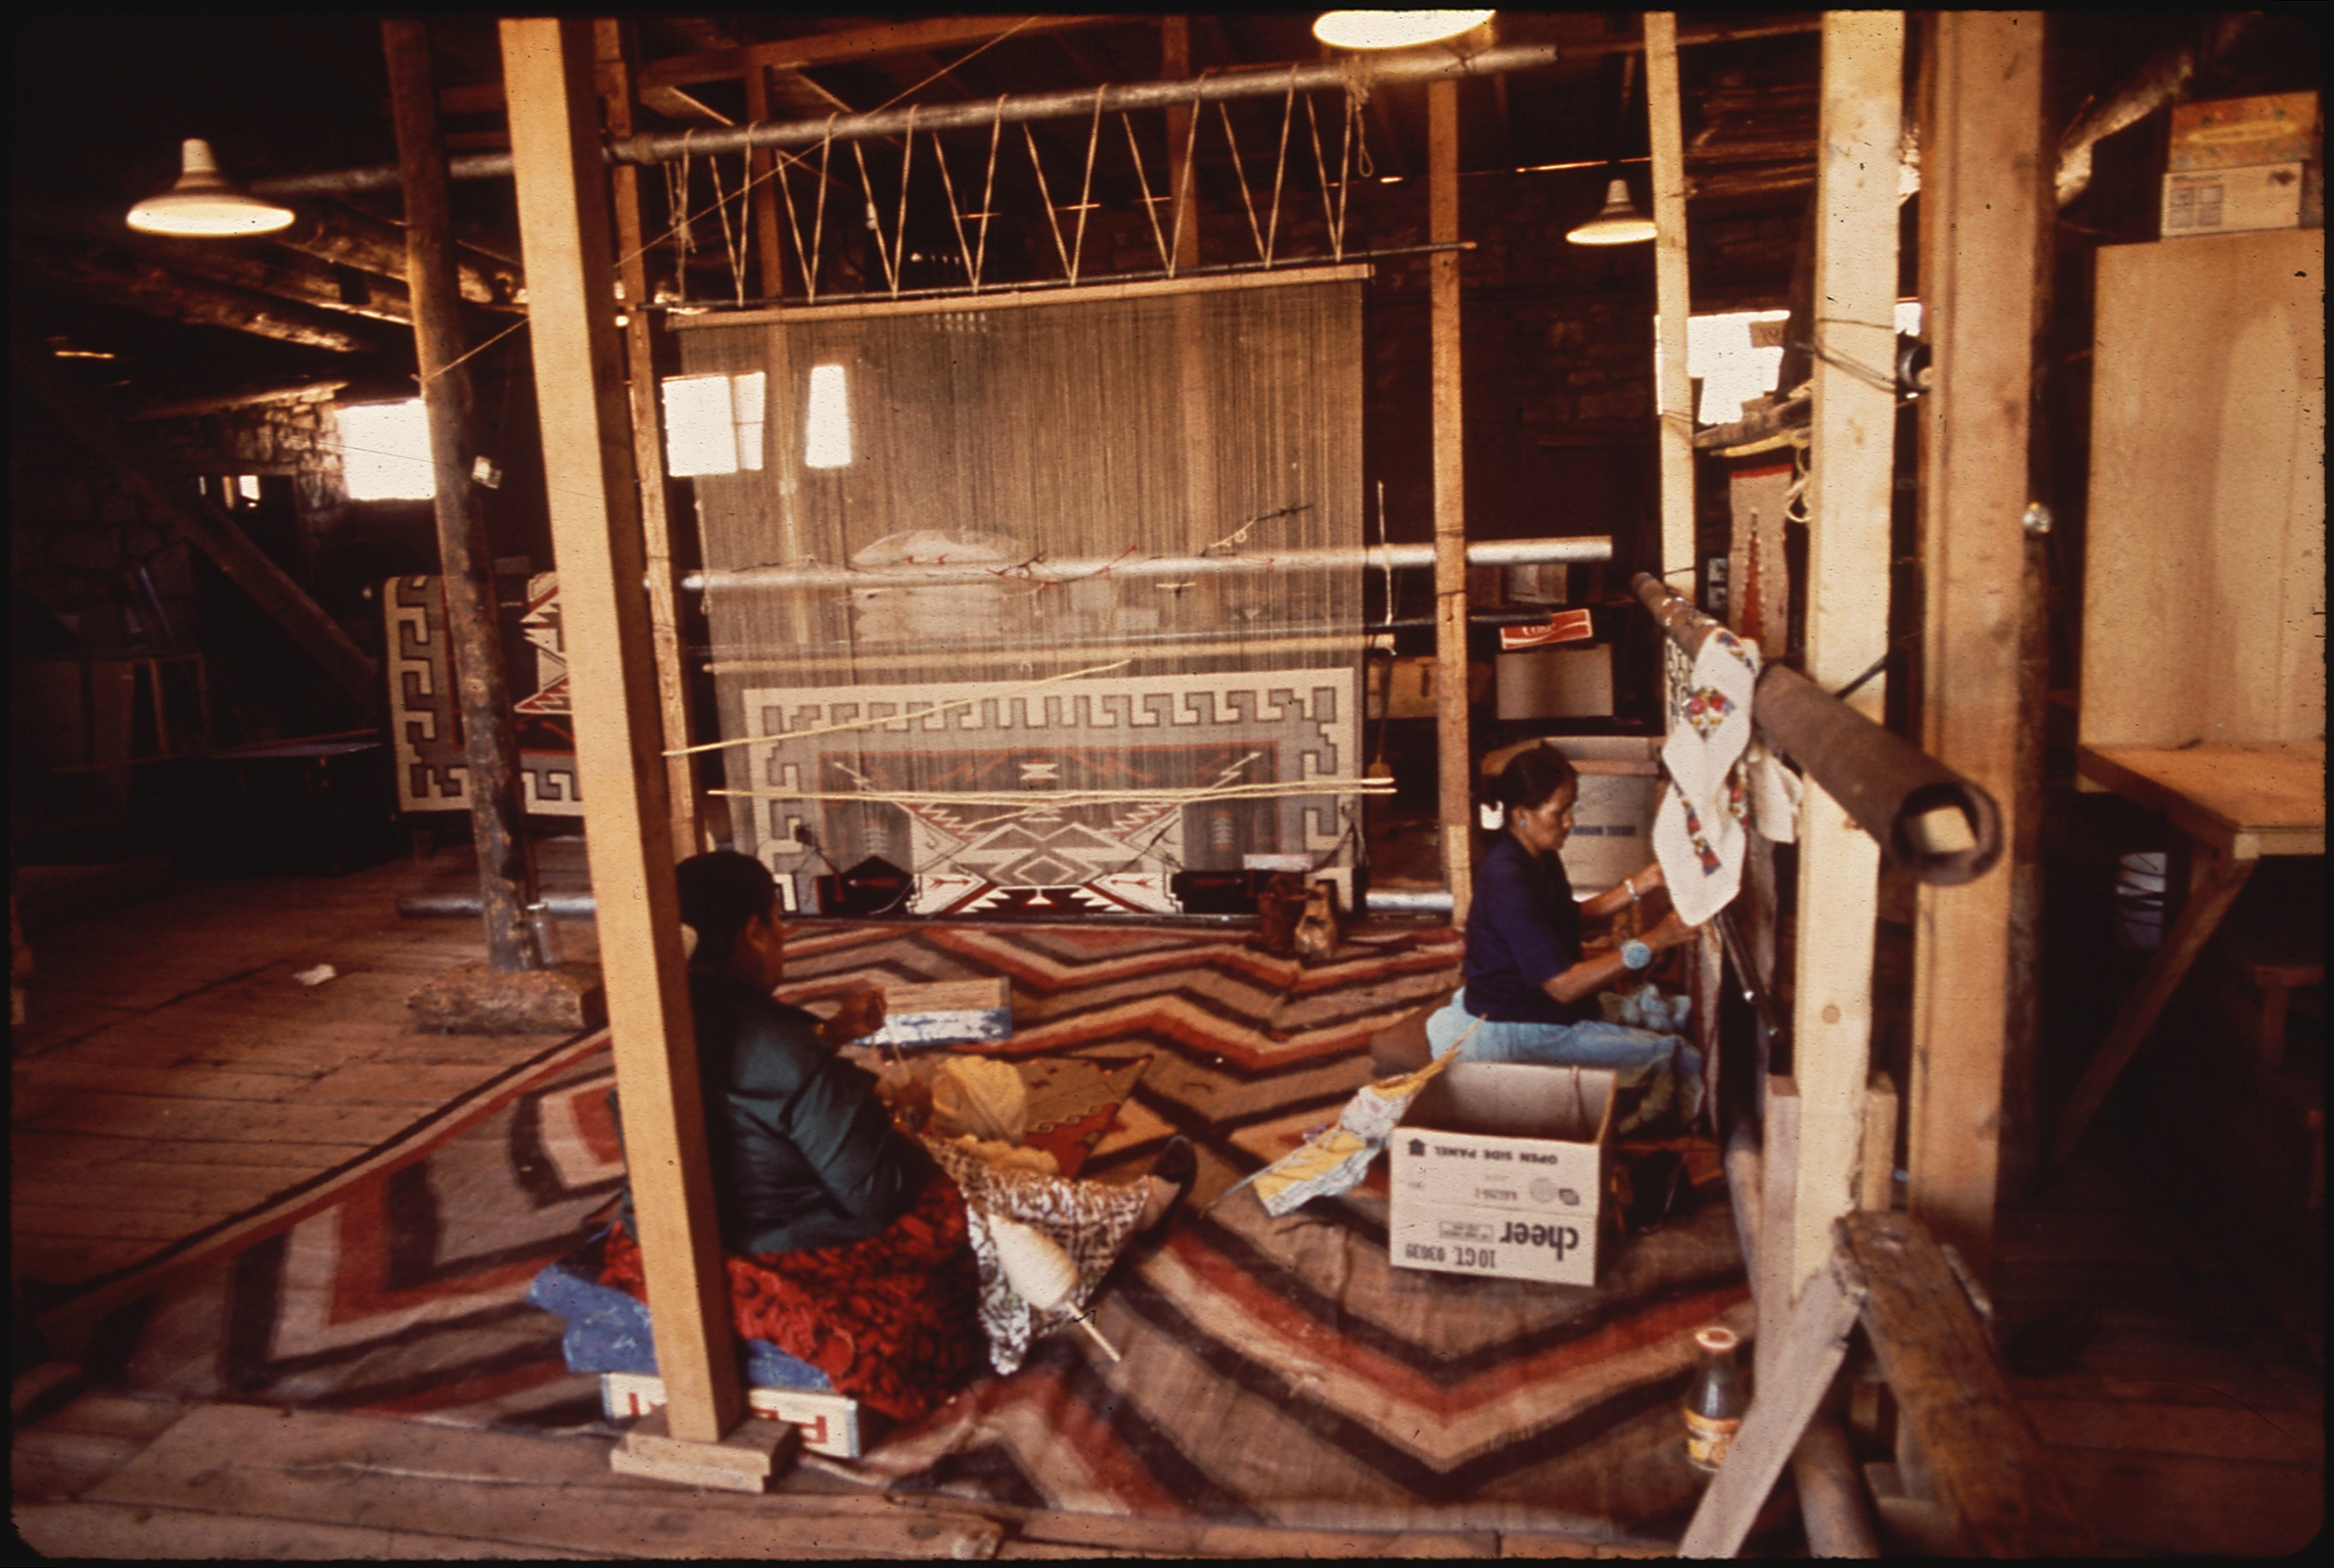 united states rug with File Navajo Women Weave A Rug At The Hubbel Trading Post  First Trading Post On The Navajo Reservation   Nara   544416 on Poaching furthermore Floor Rug Hooking Frame further Small Wooden Weaving Loom For A Child as well Stock Foto Kippenhok Image22755760 as well Lakeshore Learning A Place For Everyone Classroom Carpet.